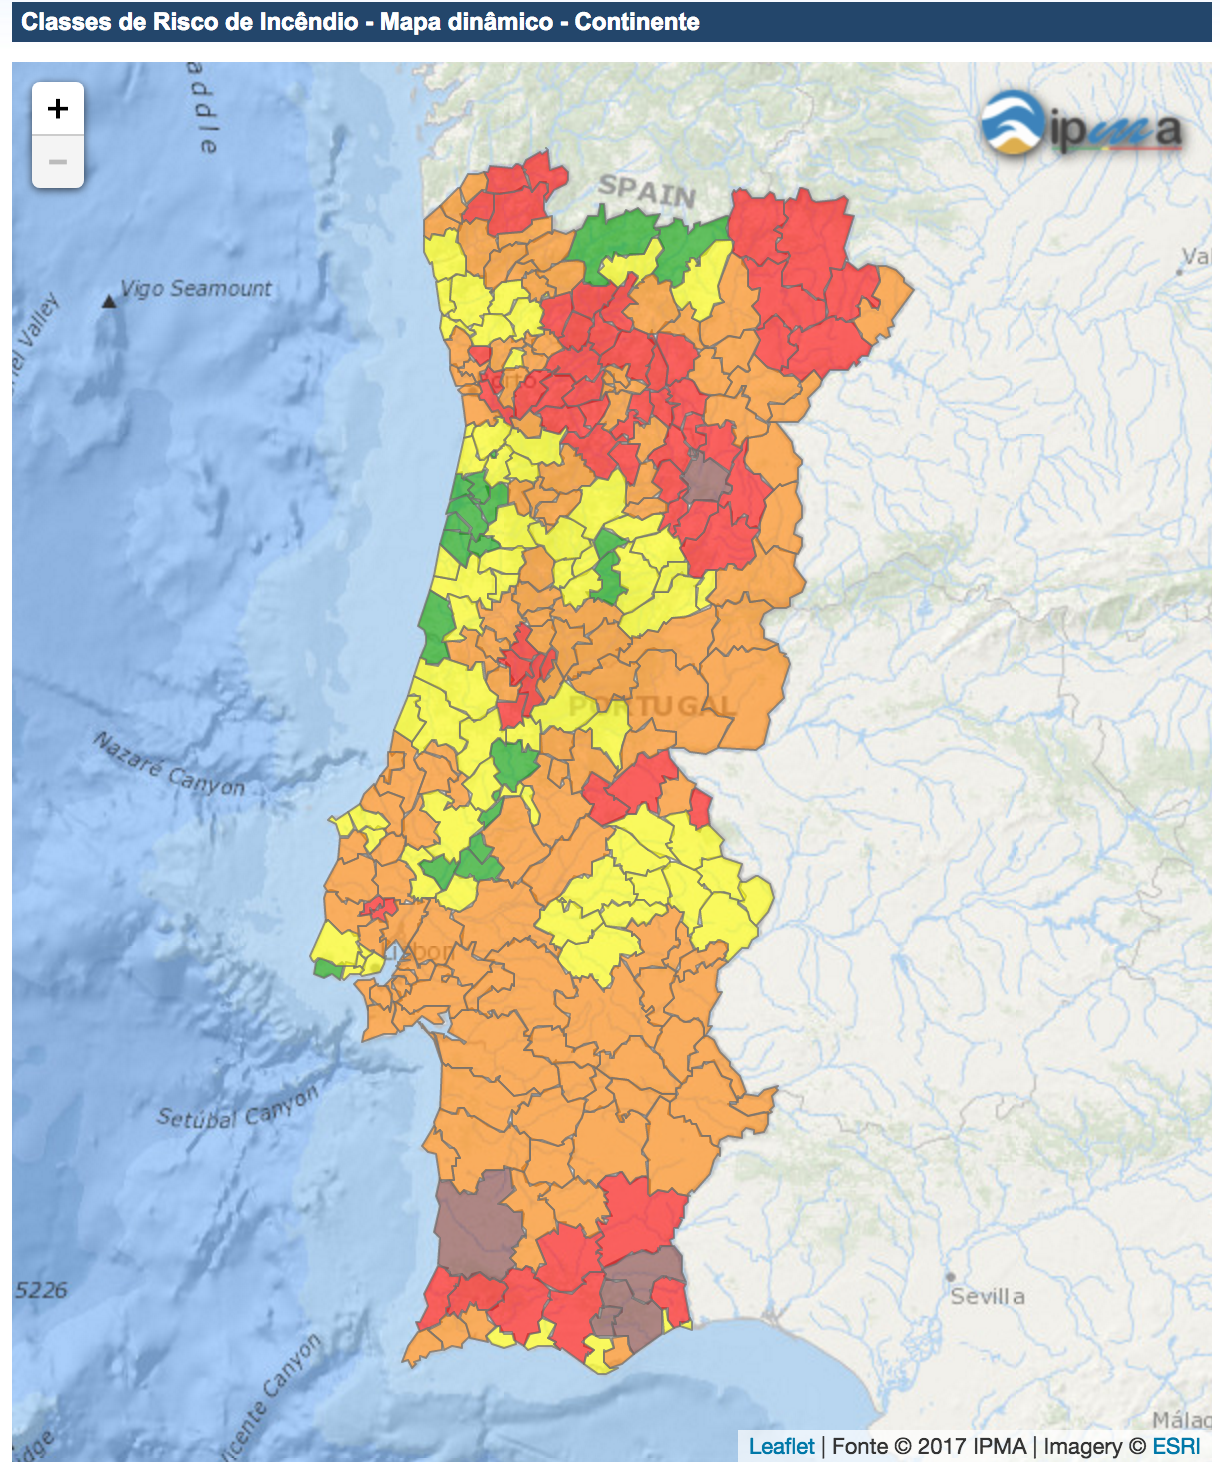 Fire risk in Portugal, 20 June 2017